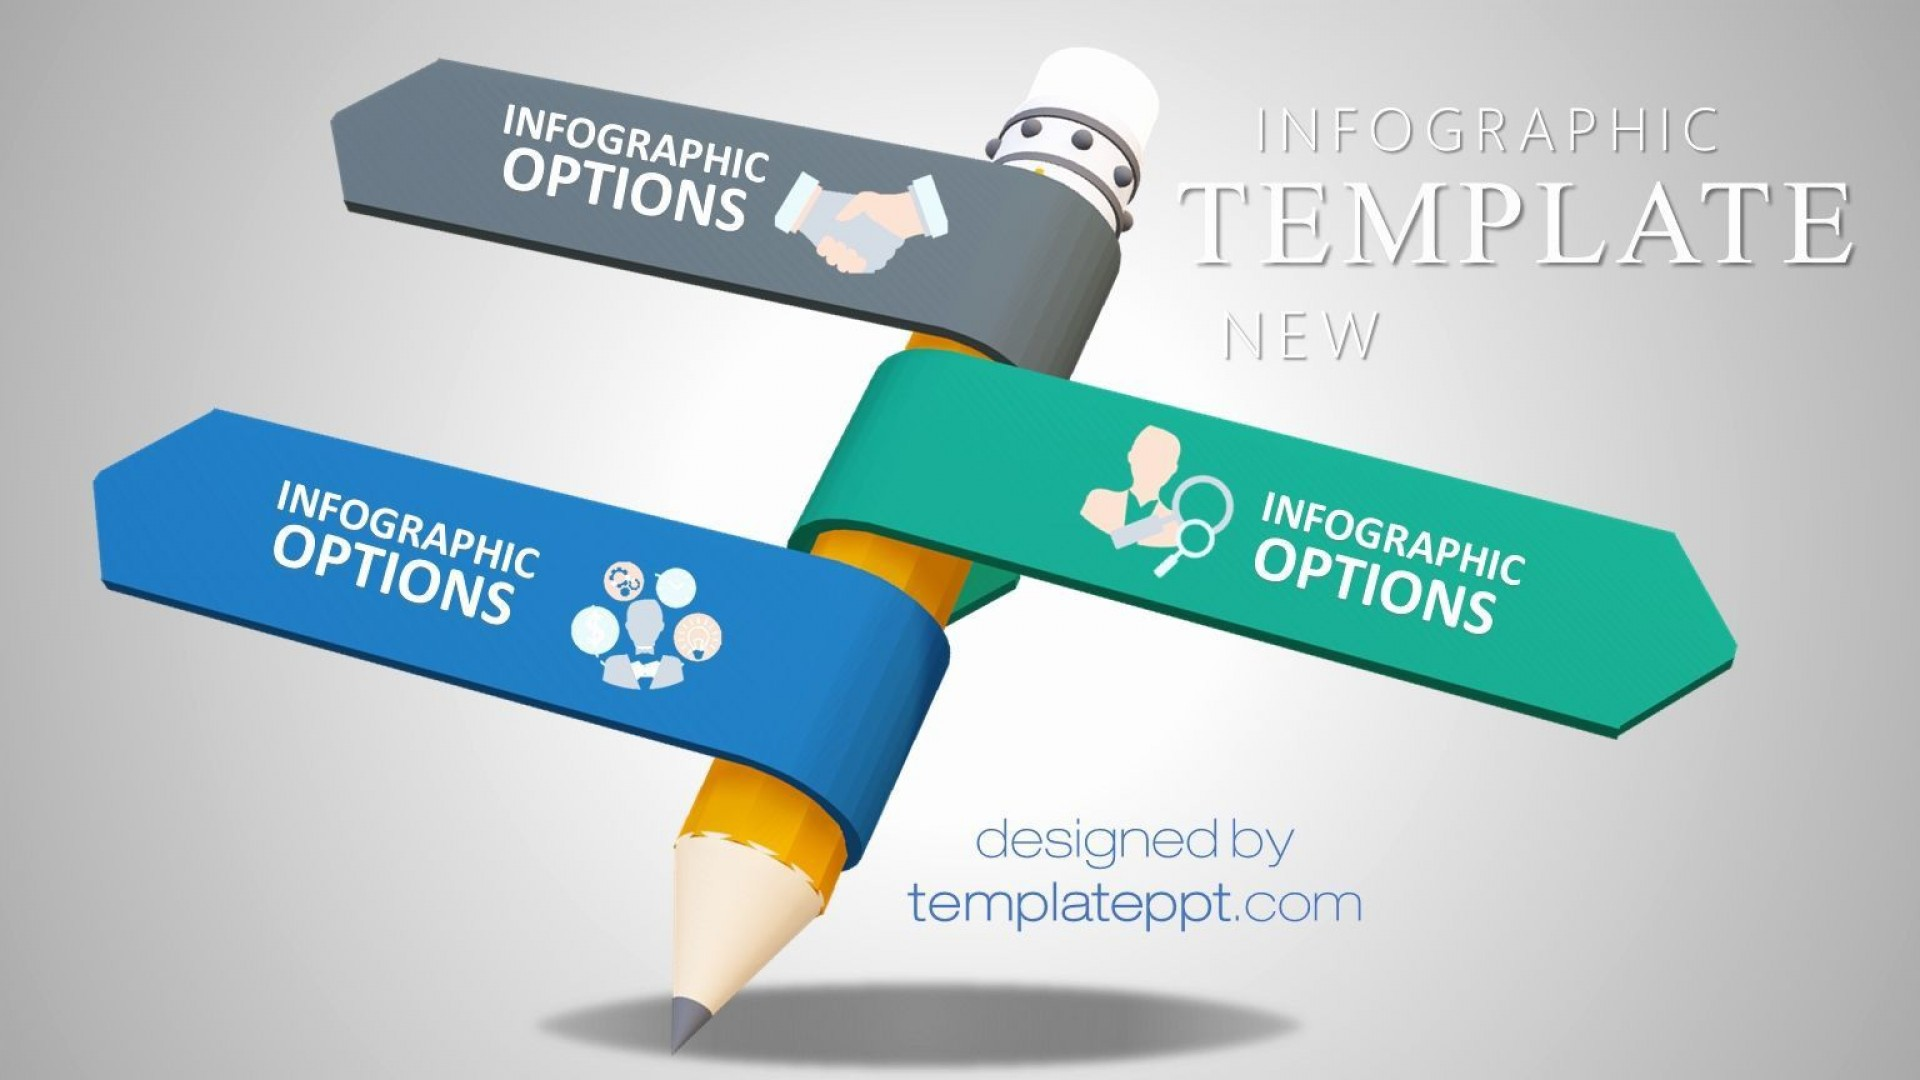 000 Wonderful Animated Ppt Template Free Download Picture  Downloads Powerpoint Education 2020 Microsoft1920